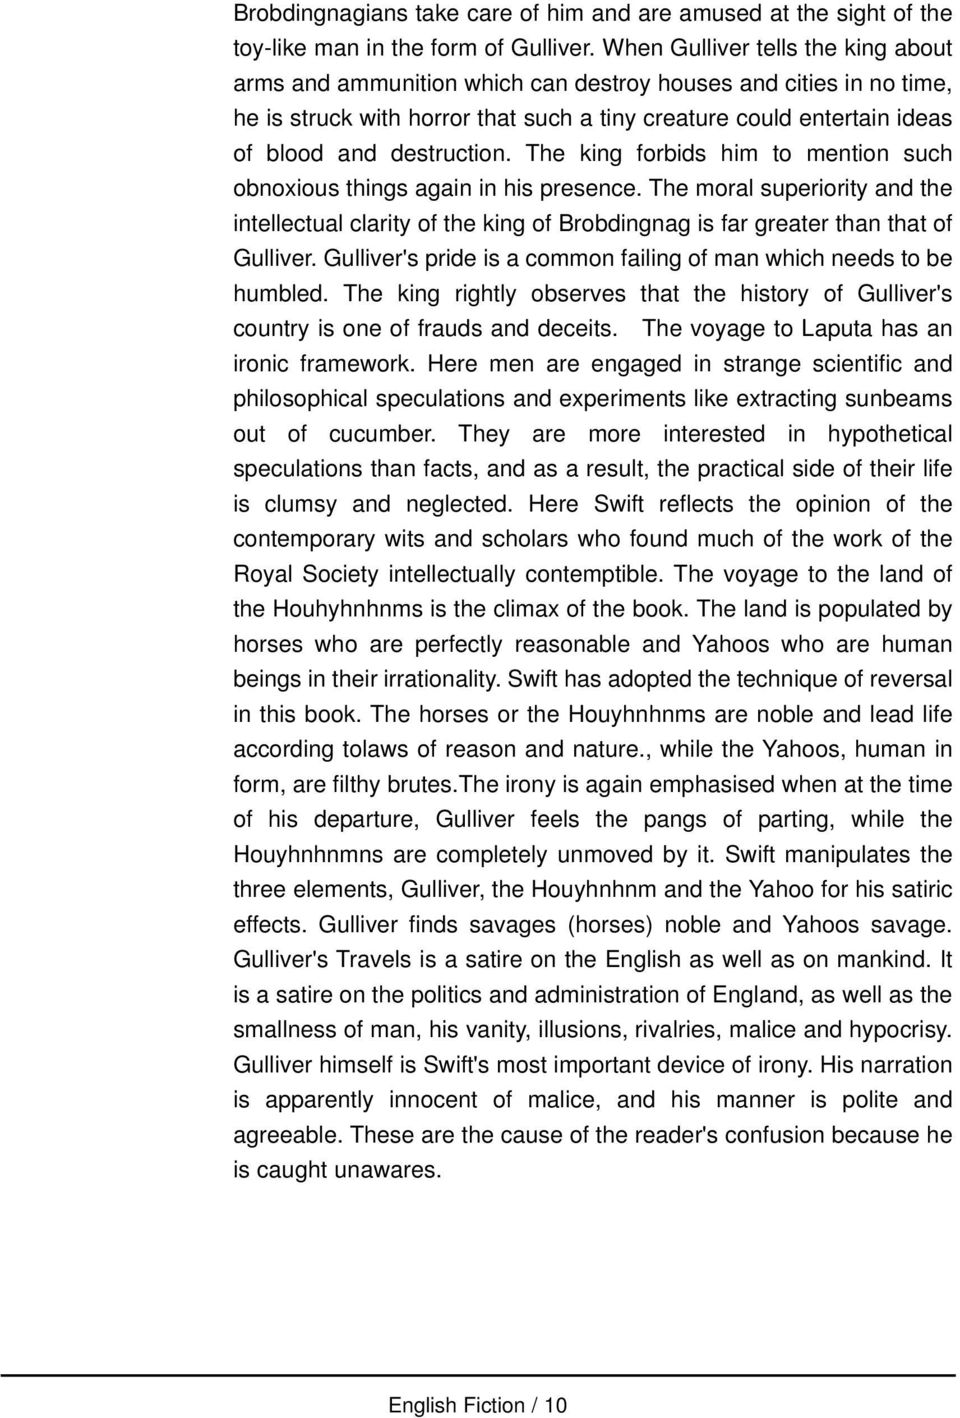 the element of rationalism in jonathan swifts gullivers travels According to prof irving rothman from the university of houston, mystery words in jonathan swift's famous novel, gulliver's travels, are, in fact, variations of hebrew.